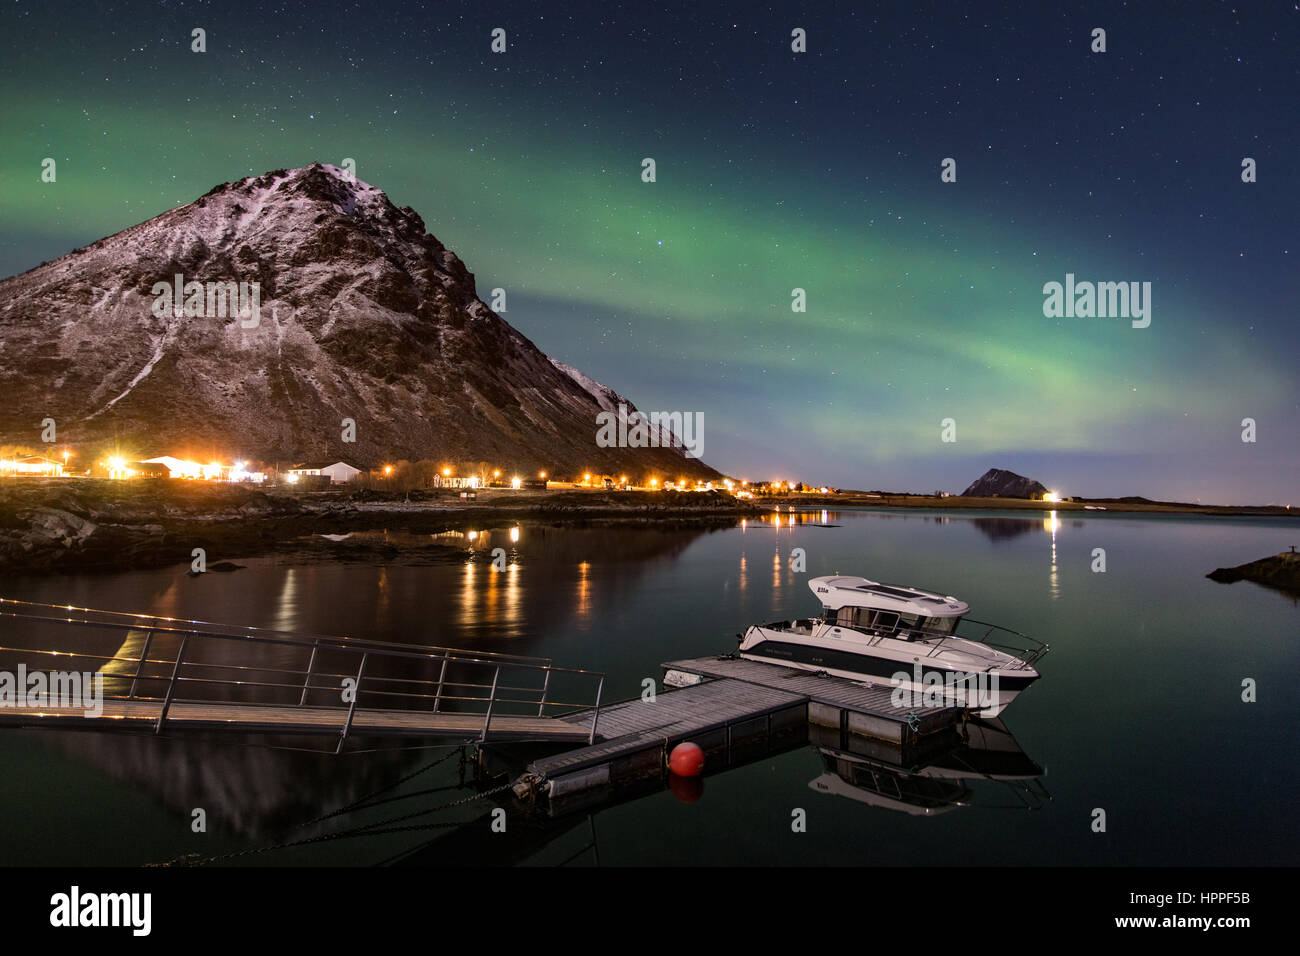 aurora borealis over Lofoten Islands, Norway, Europe Stock Photo